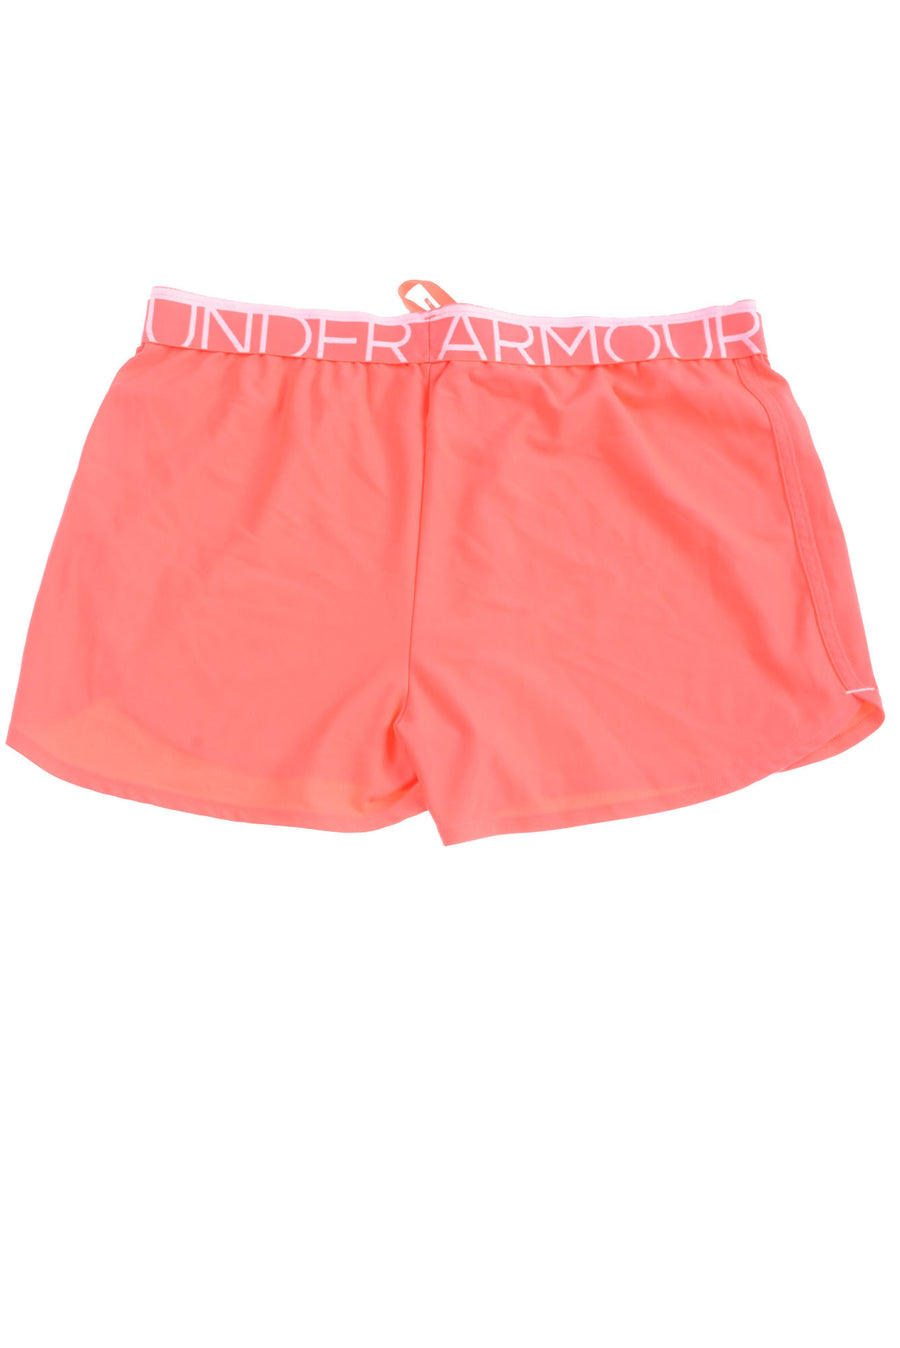 USED Under Armour Women's Shorts Medium Pink